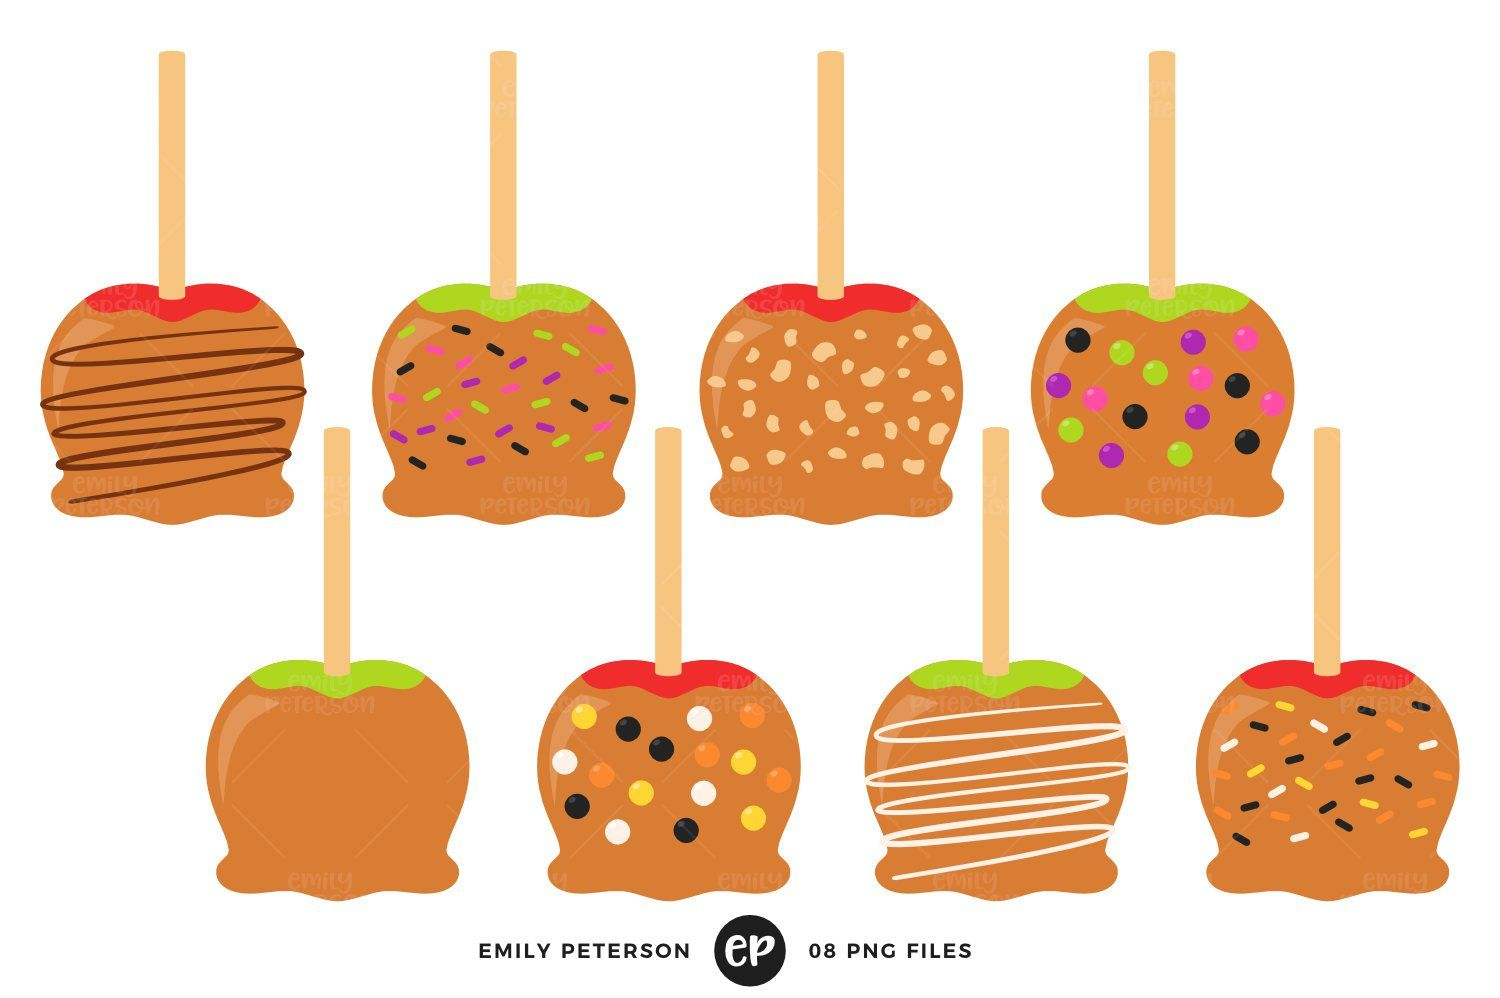 Caramel Apples Clip Art Candy Apples Clipart Halloween Candy Clip Art Commercial Use Instant Download Caramel Apples Apple Clip Art Candy Apples